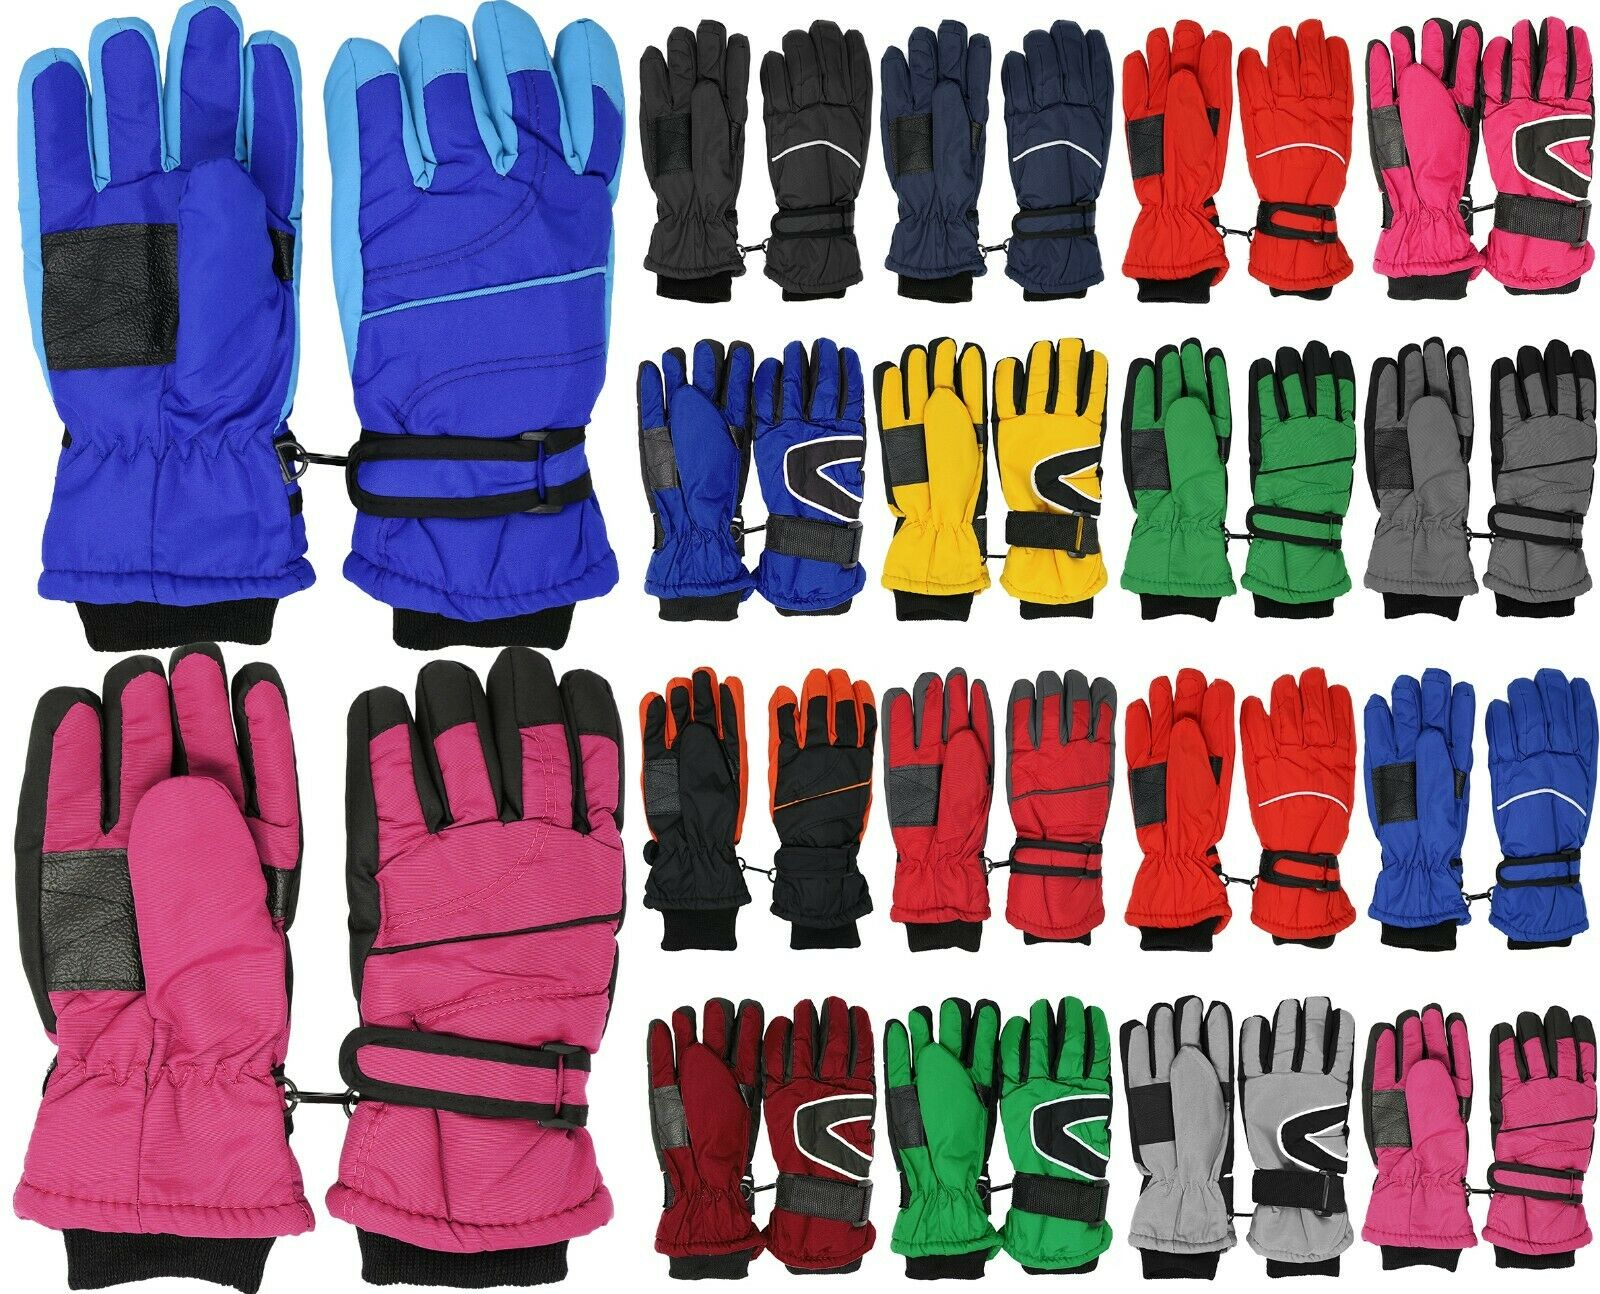 Kids Winter Warm Snow & Ski Gloves – Thermal Shell & Synthetic Leather Palm Baby